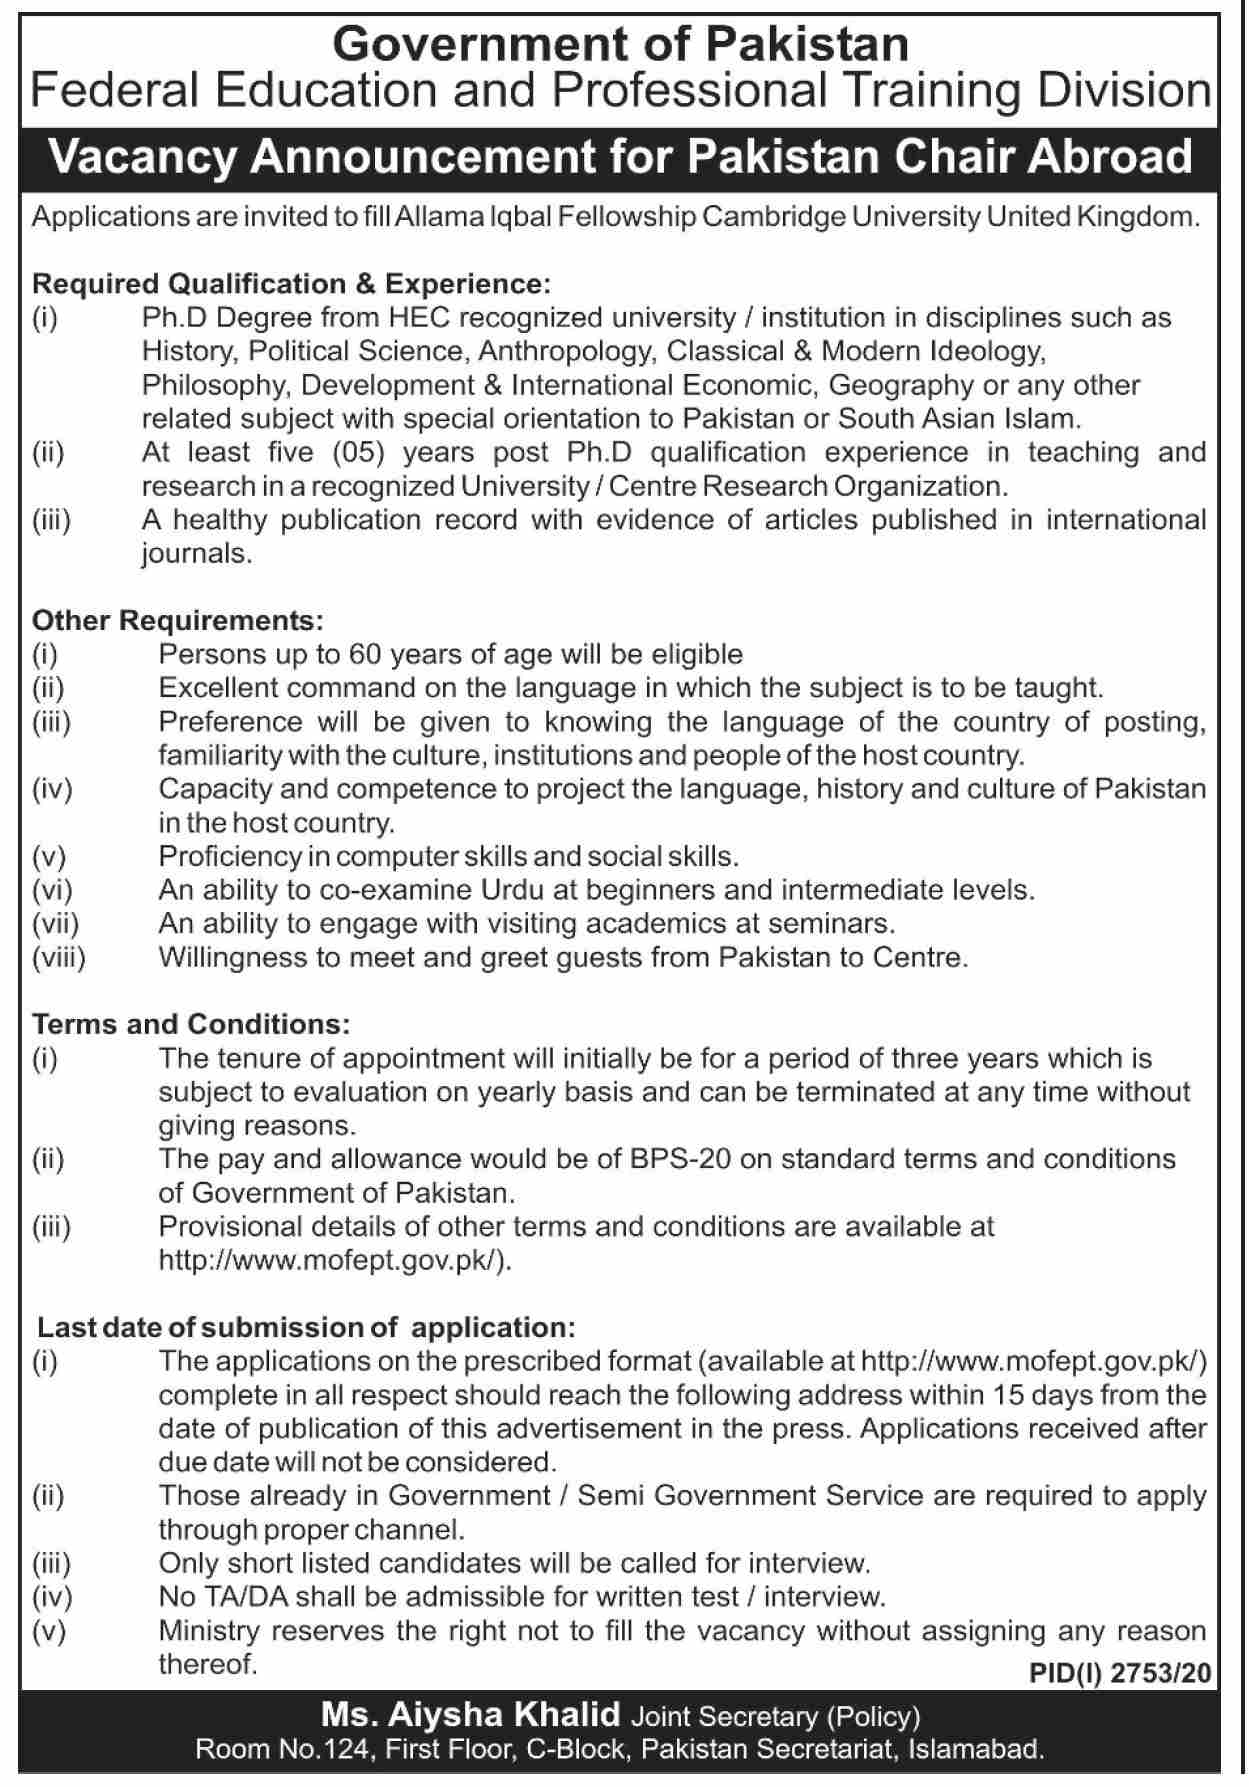 Federal Education and Professional Training Division Jobs November 2020